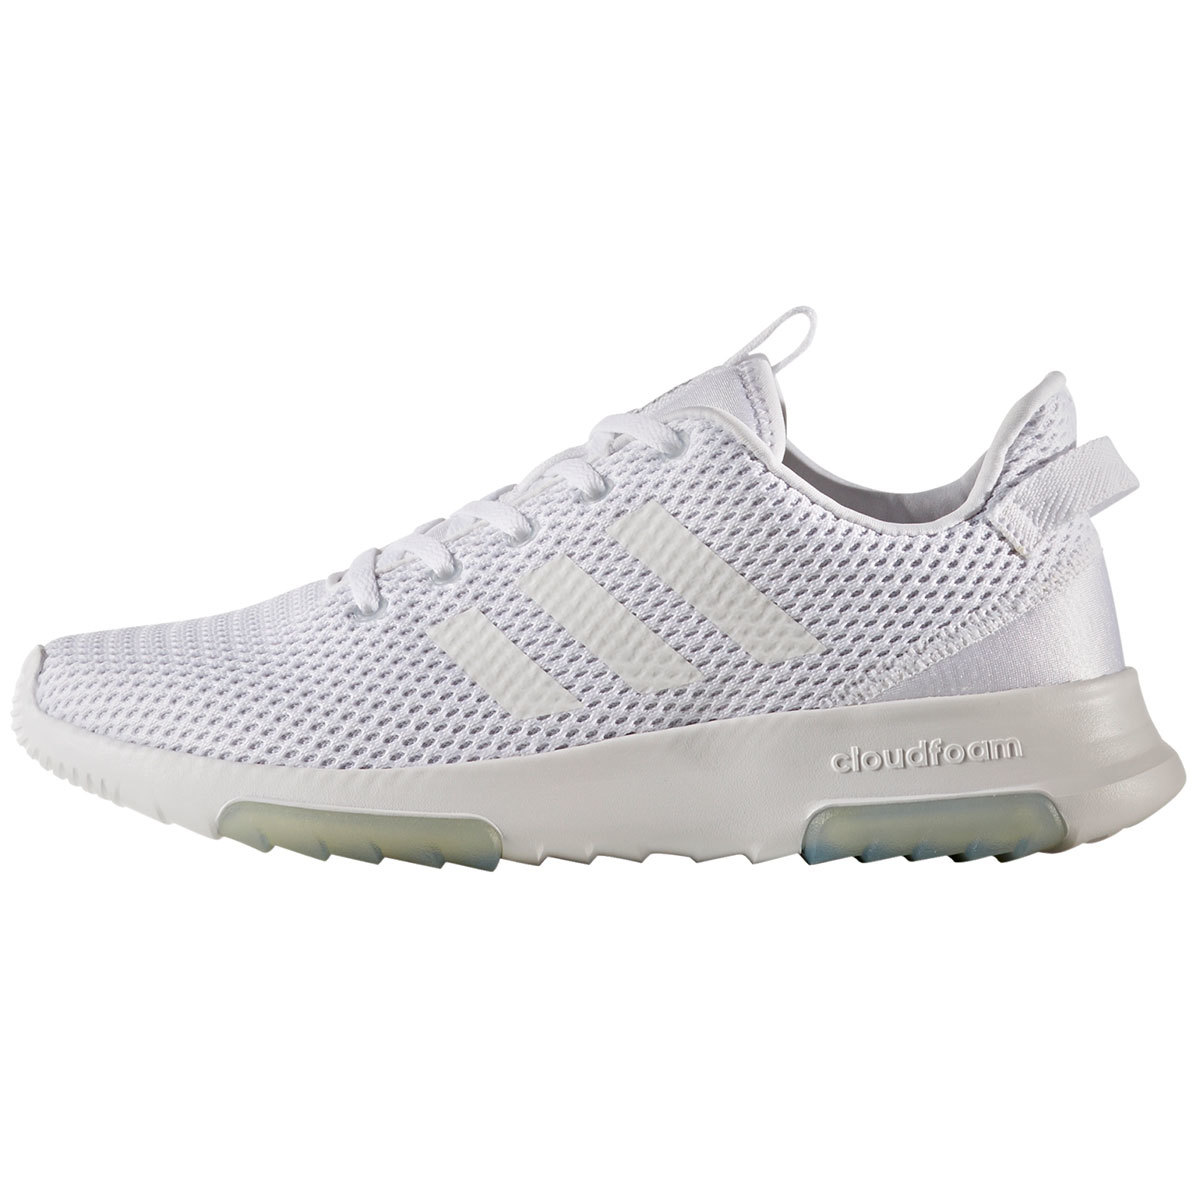 Neo Cloudfoam Racer TR Running Shoes